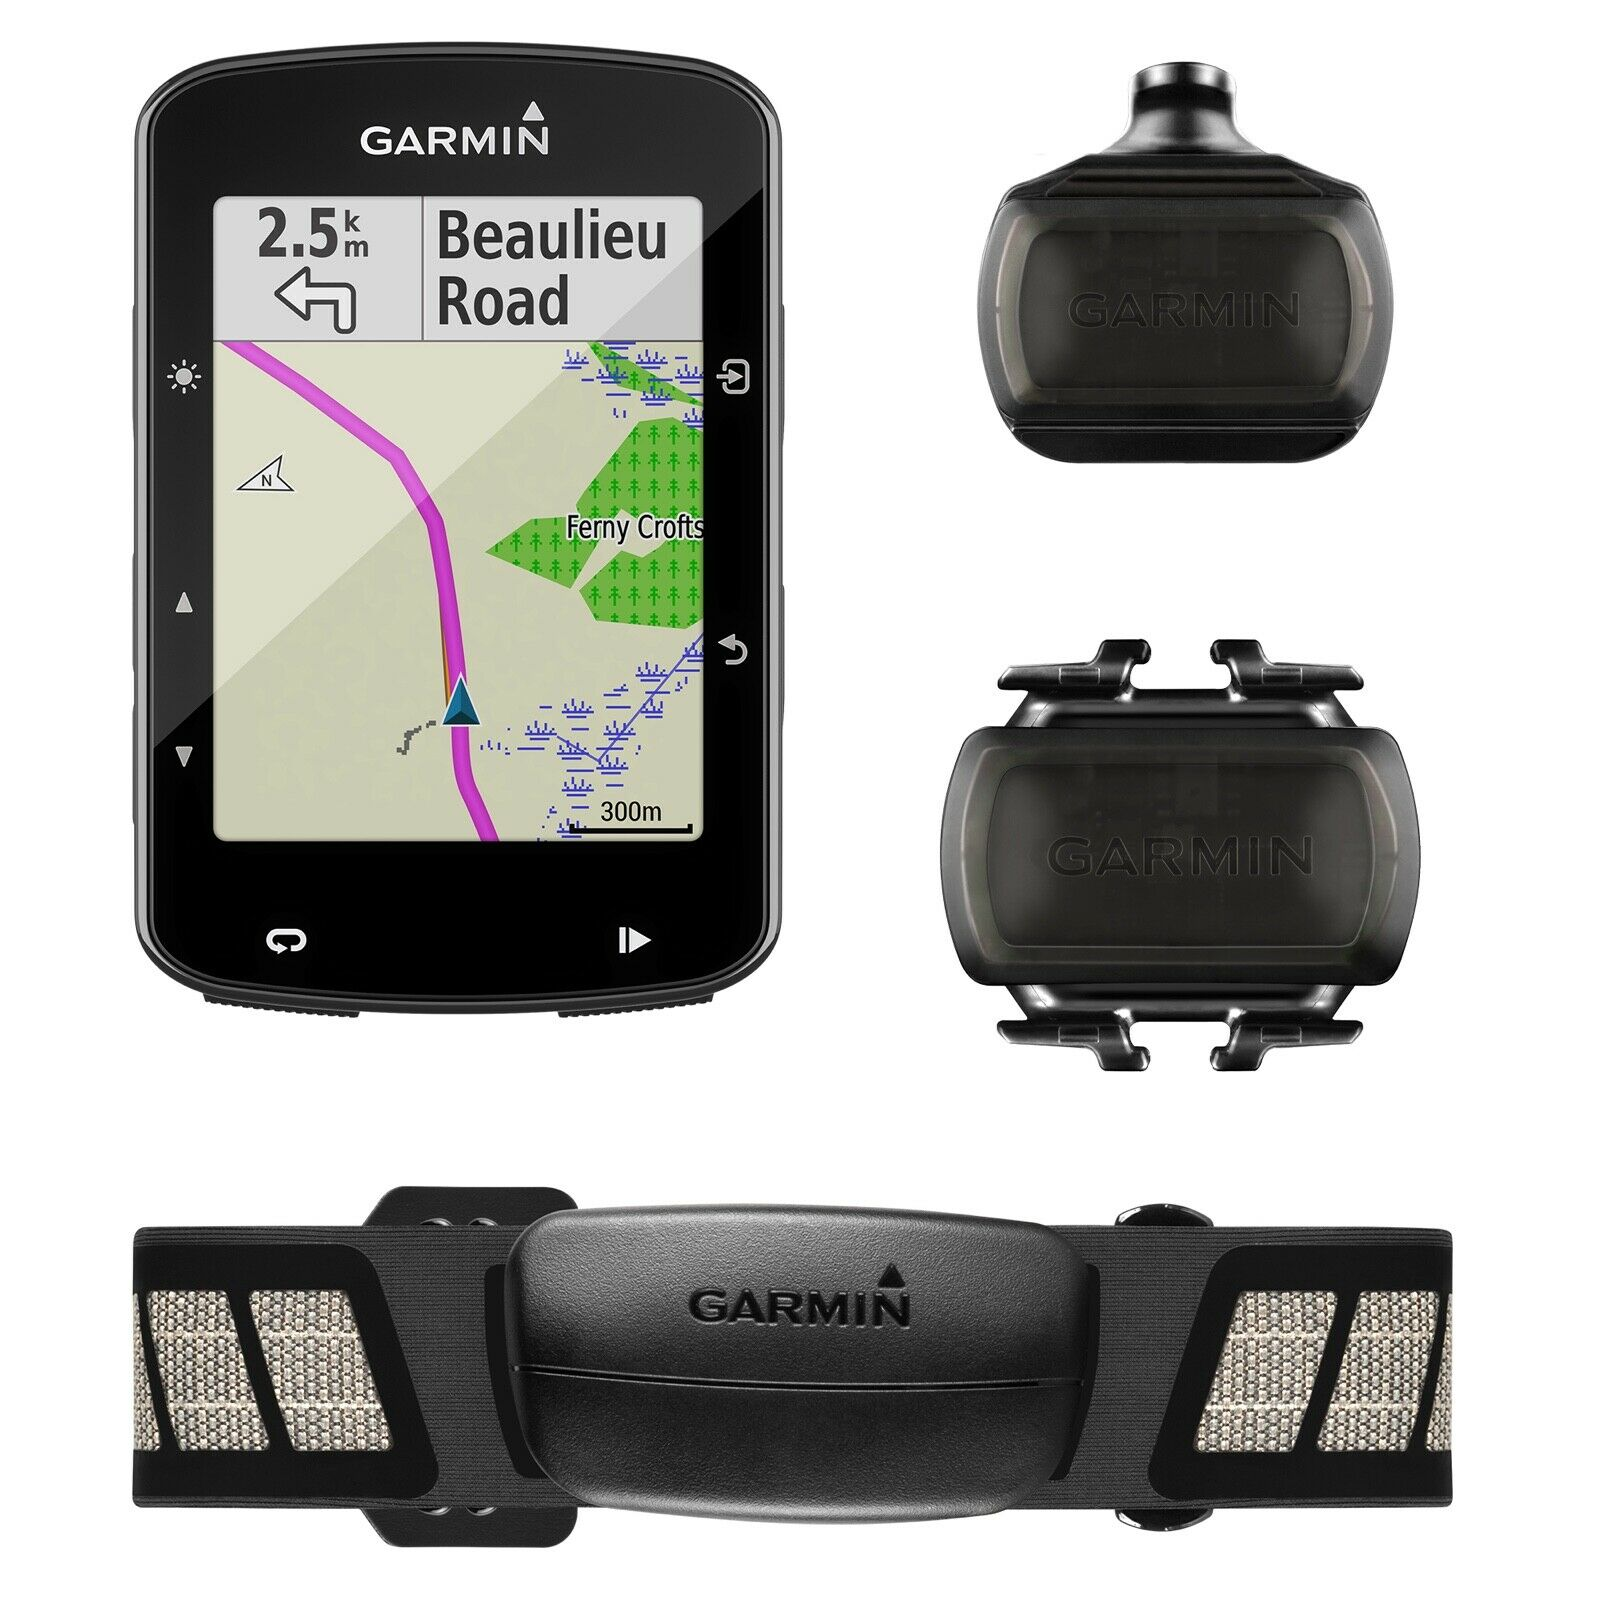 Garmin Edge 520 Plus Sensor Paquete GPS  010-02083-01  Autorizado Garmin Dealer